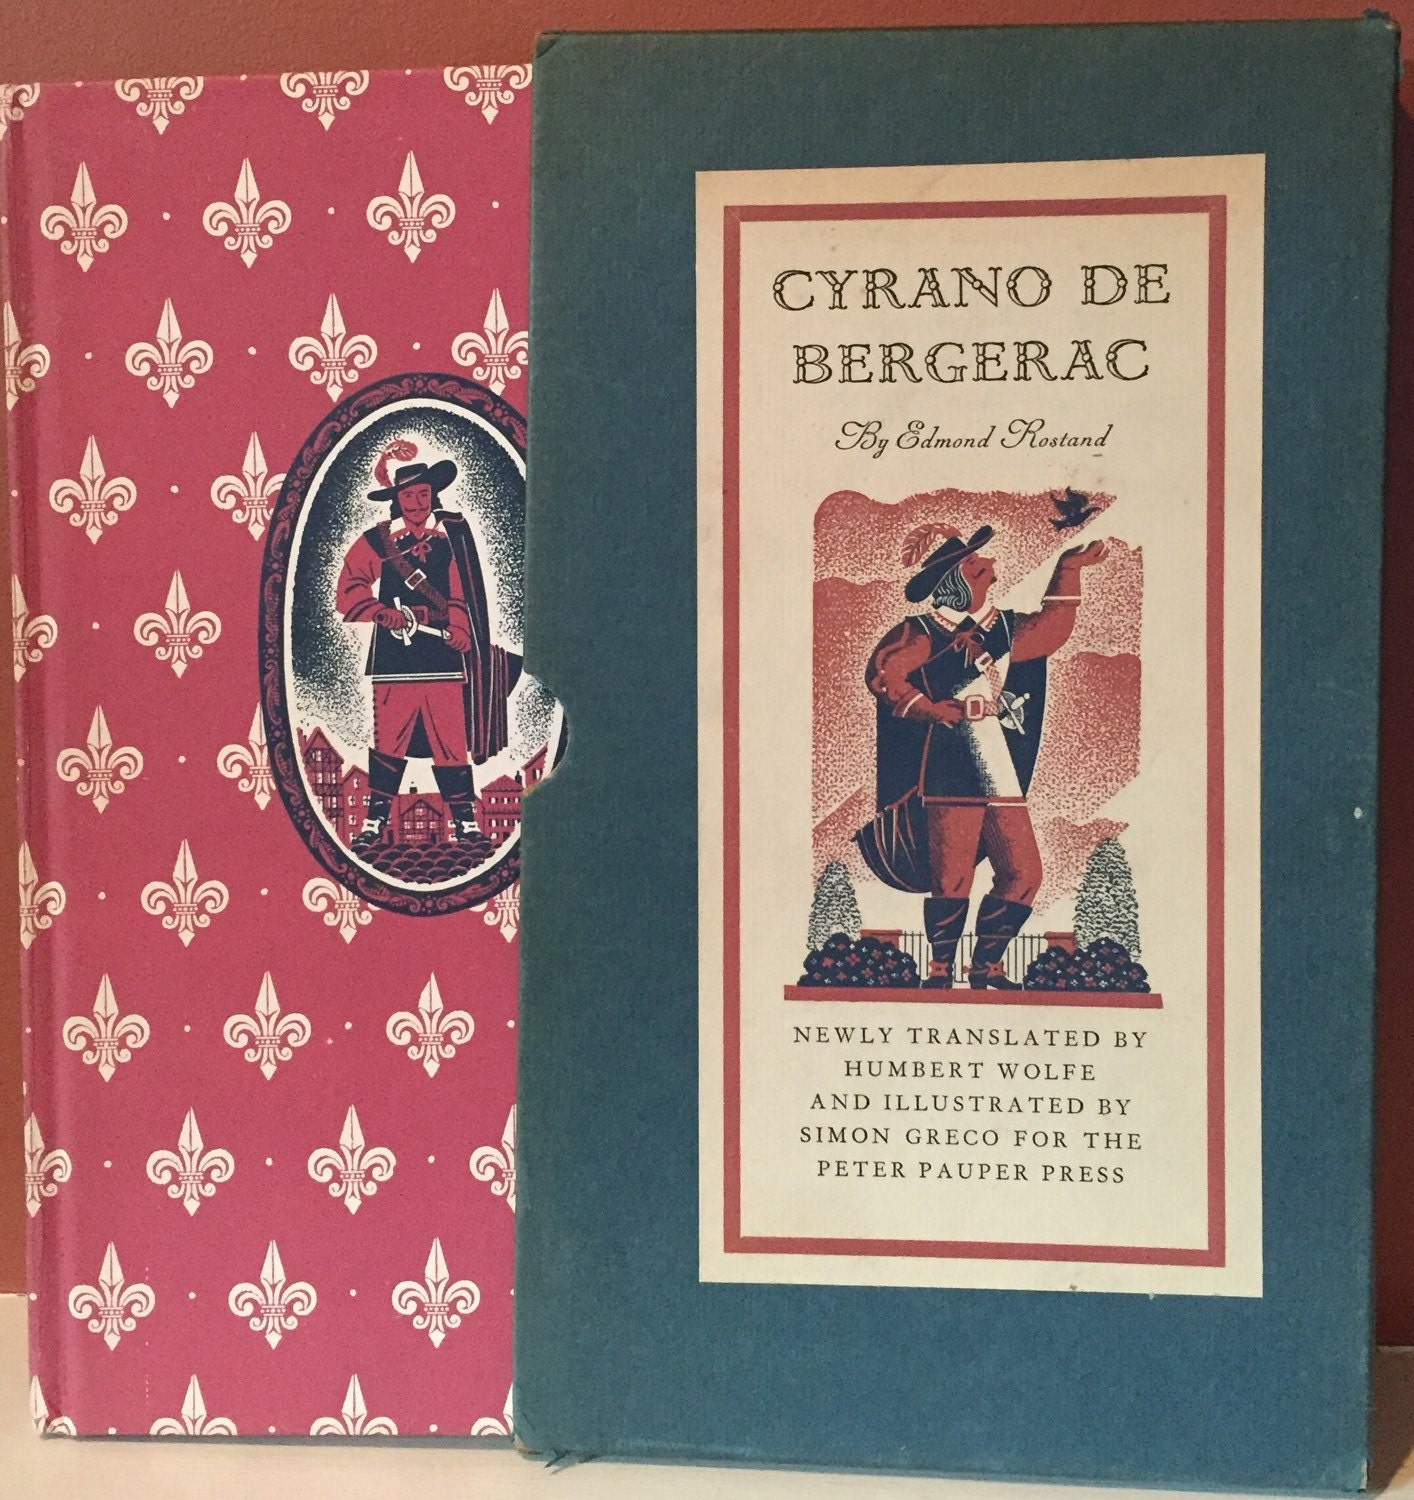 an analysis of the book review on cyrano de bergerac Free kindle book and epub digitized and proofread by project gutenberg.